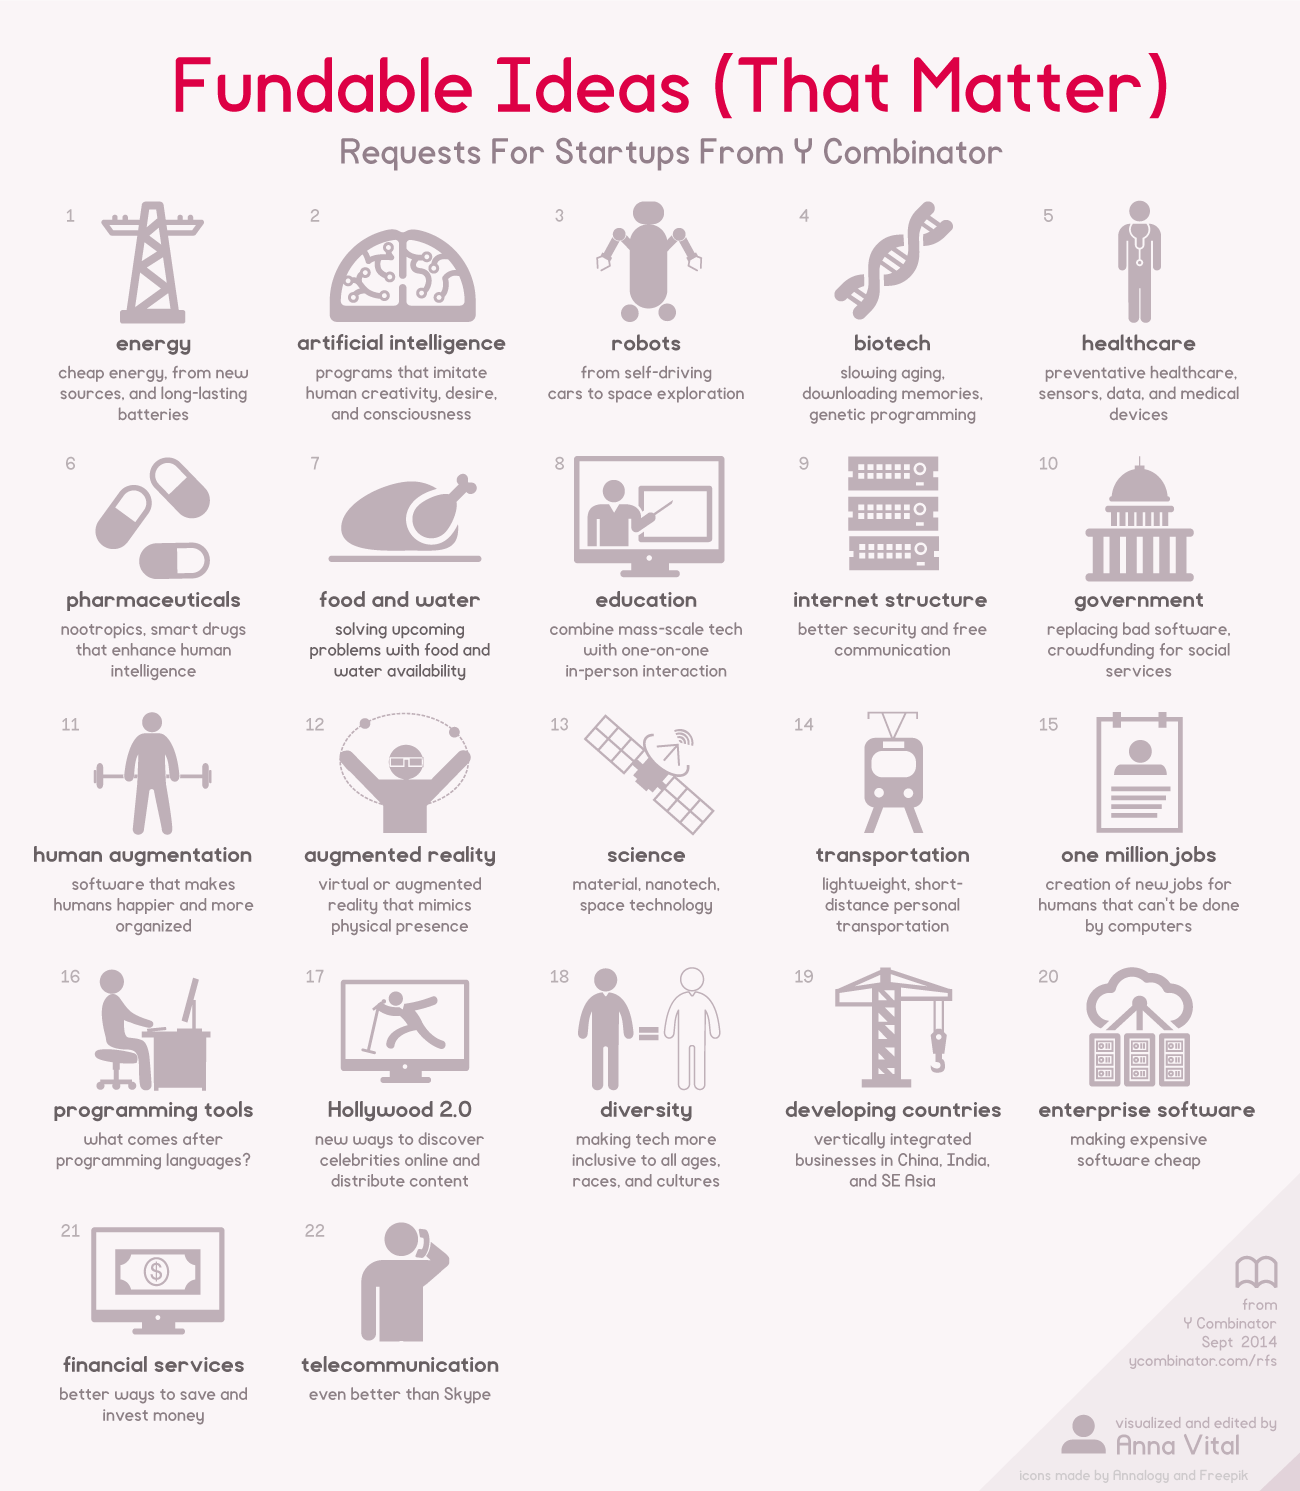 75 Ideas for Businesses You Can Launch for Cheap or Free